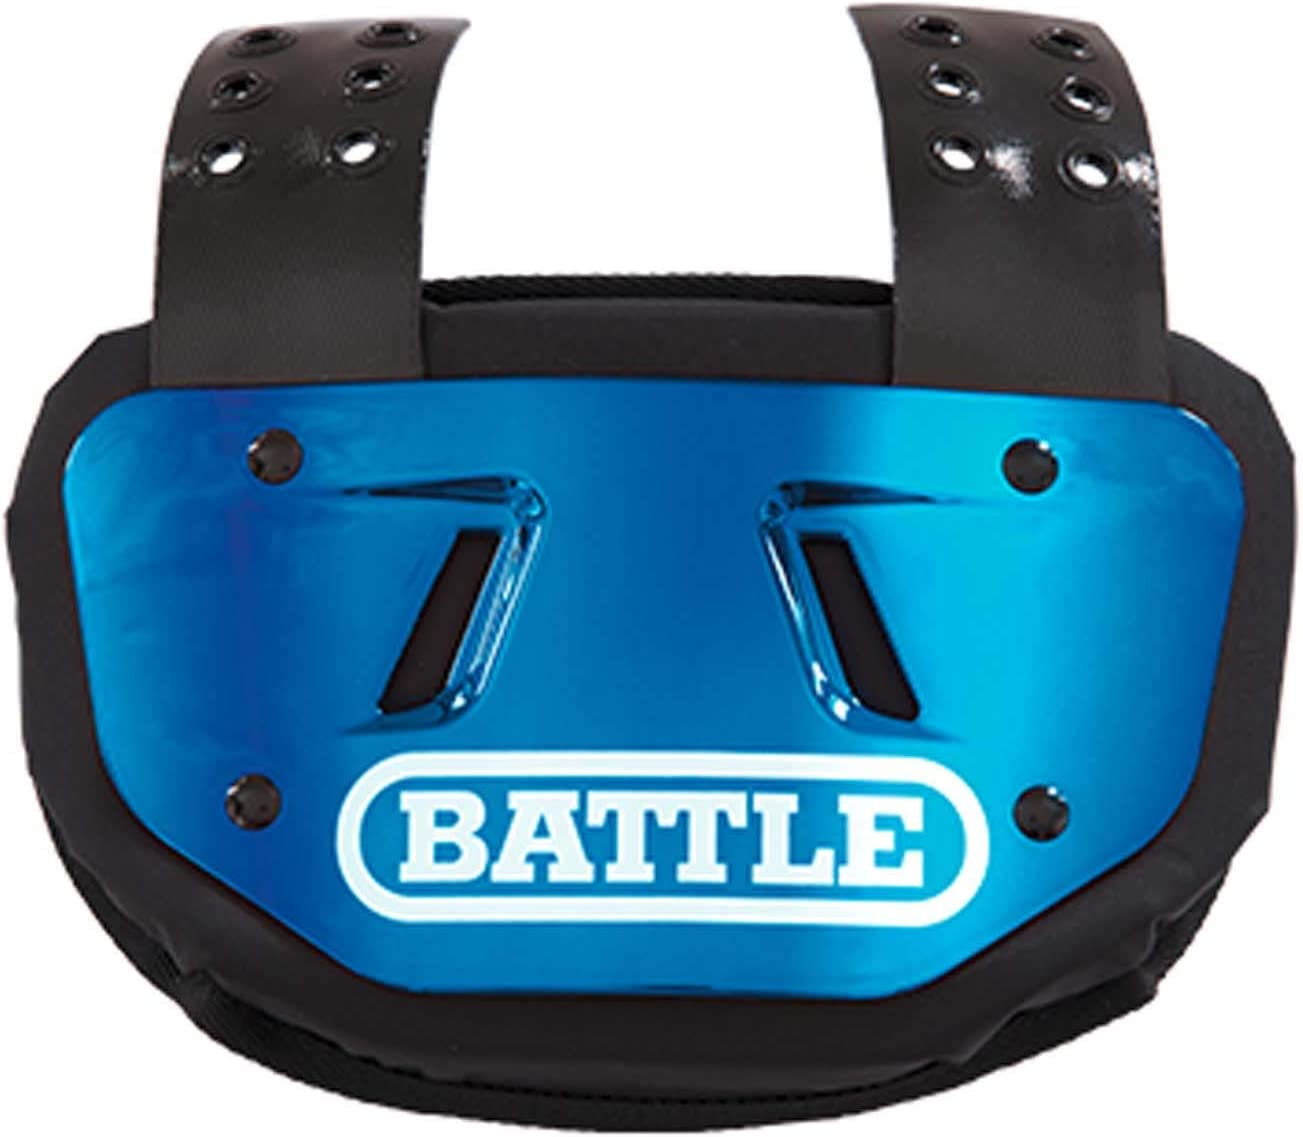 Battle Sports Back Plate - Rear Protector Lower Back Pads for Football Players : Sports & Outdoors